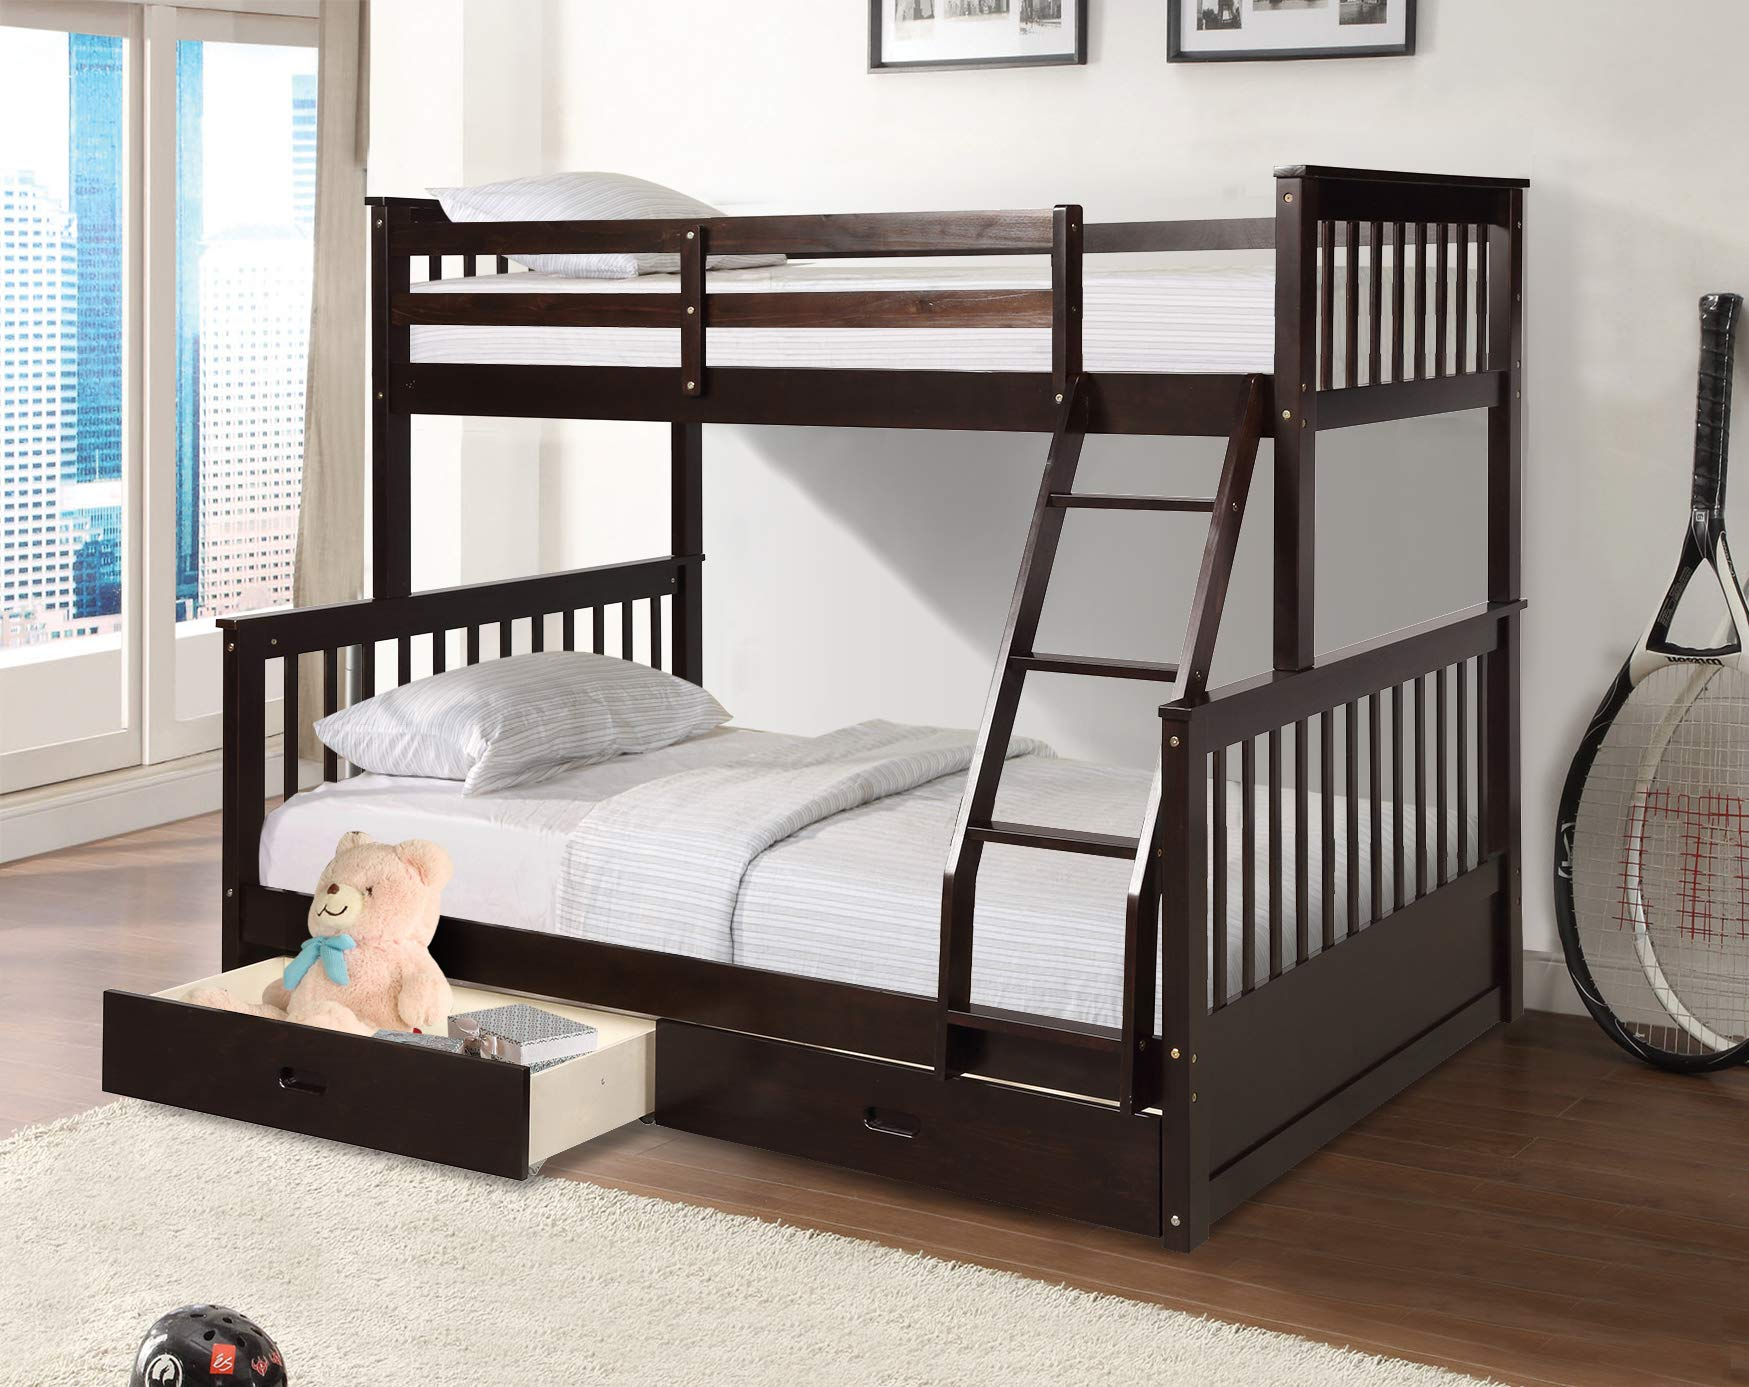 Twin Over Full Bunk Bed With Storage Drawers Weyoung Solid Wood Bunk Bed Frame With 2 Raised Panel Bed Drawers Separate To Twin Full Bed Dark Espresso Buy Online In Monaco At Monaco Desertcart Com